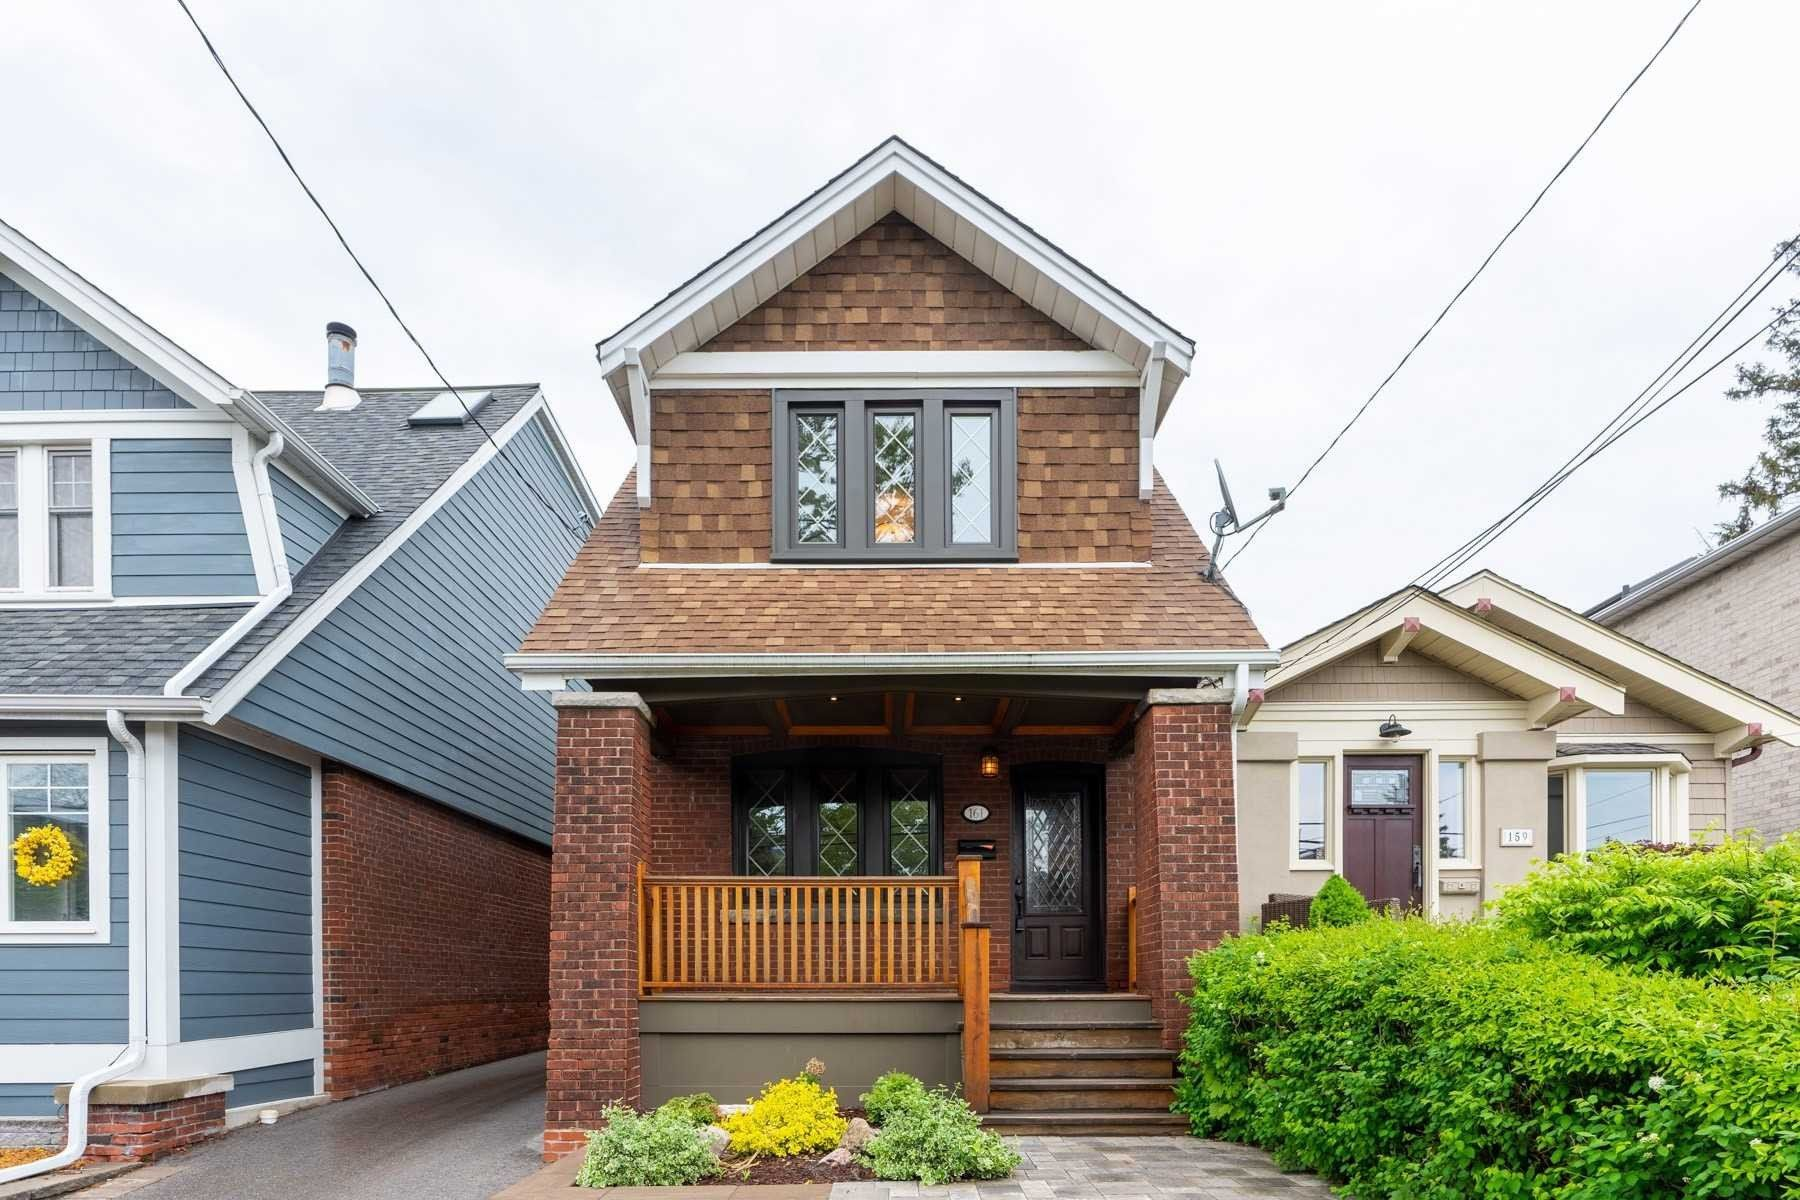 Main Photo: SOLD COURCELETTE RD. TORONTO